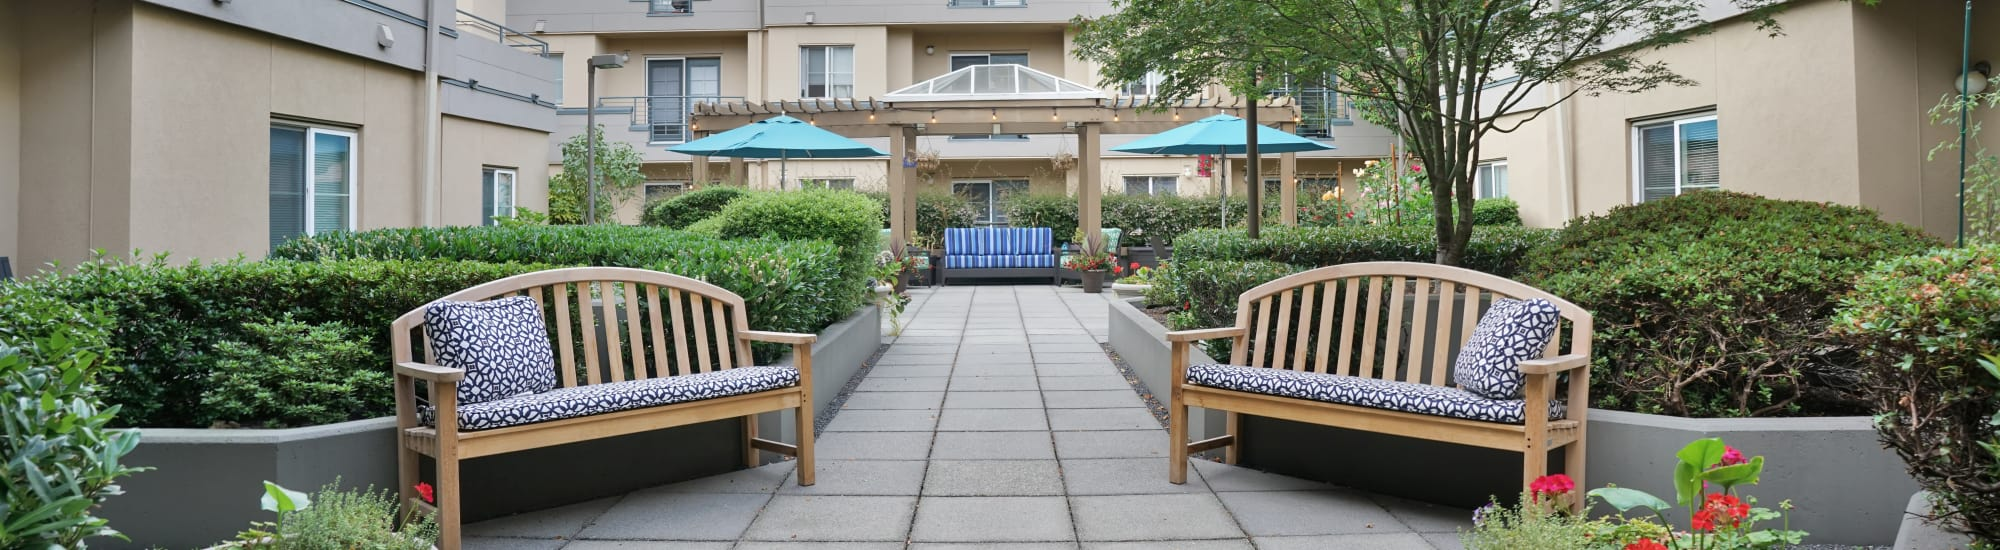 Contact at Island House Assisted Living in Mercer Island, Washington